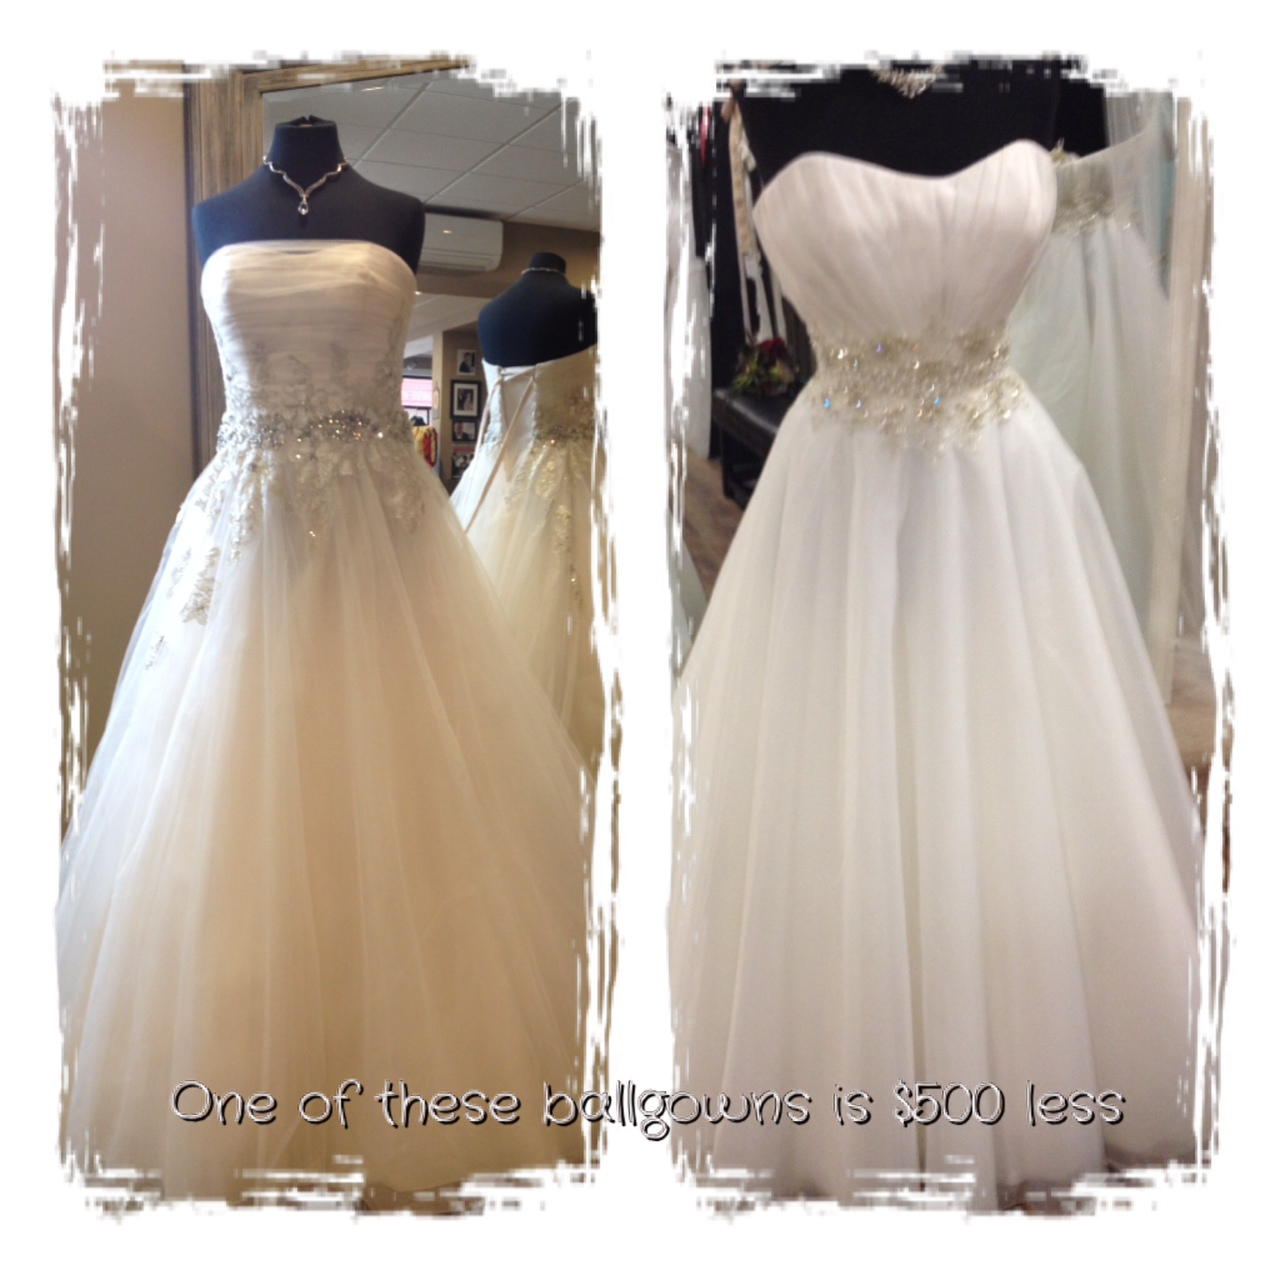 One of these ball gowns is from a traditional designer and the other is from one of our private, exclusive lines.